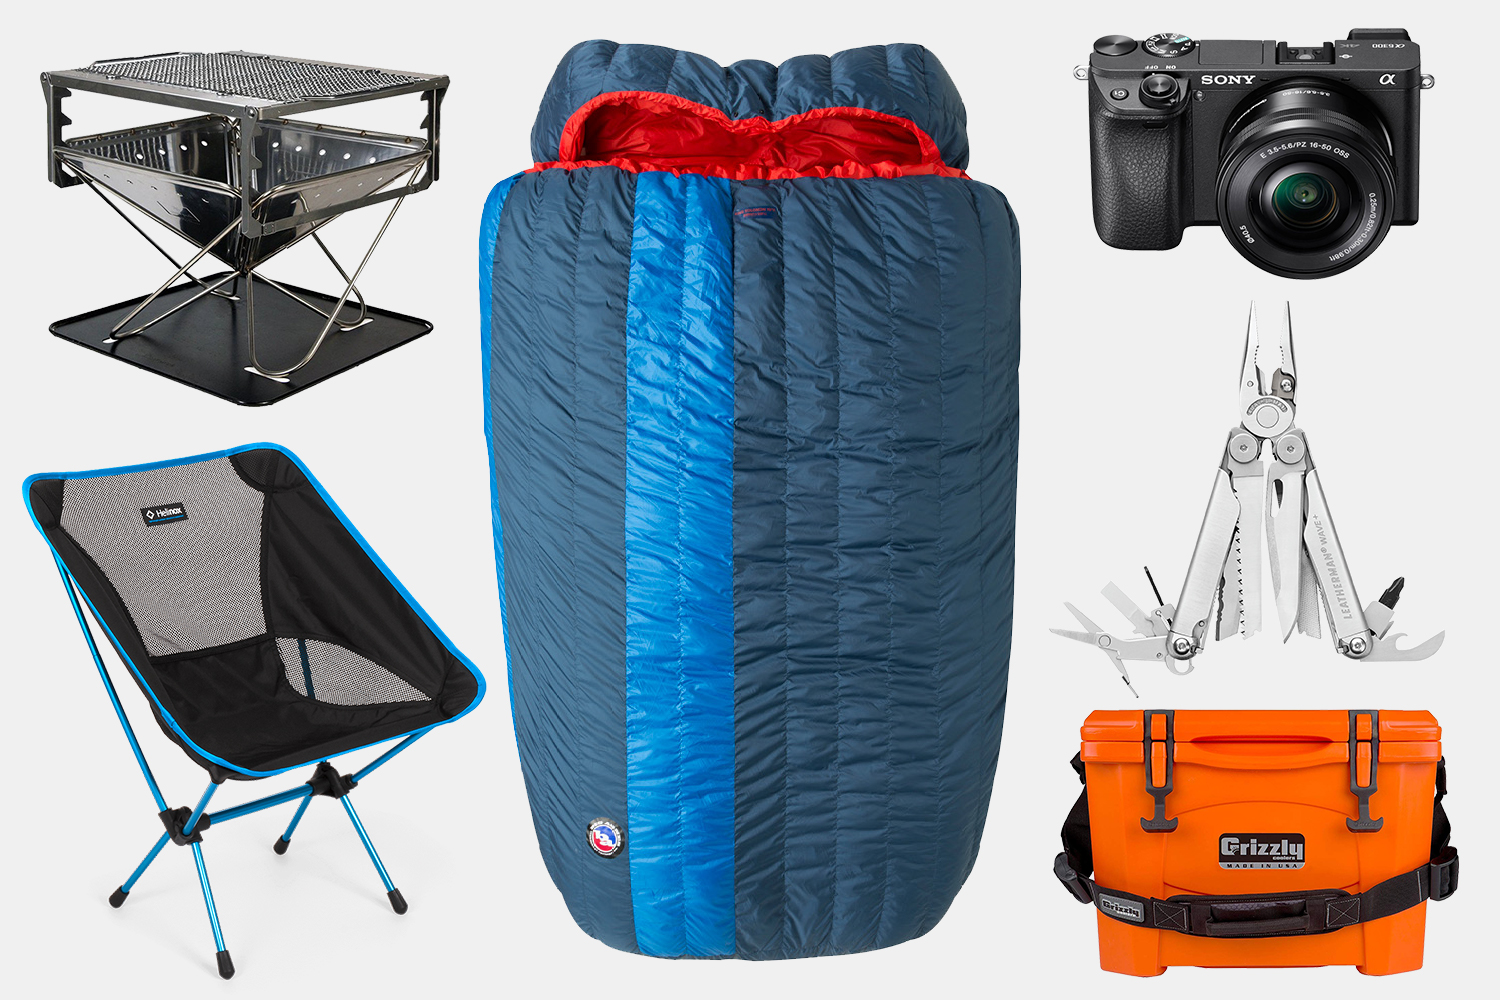 Best Car Camping Gear for a Porsche